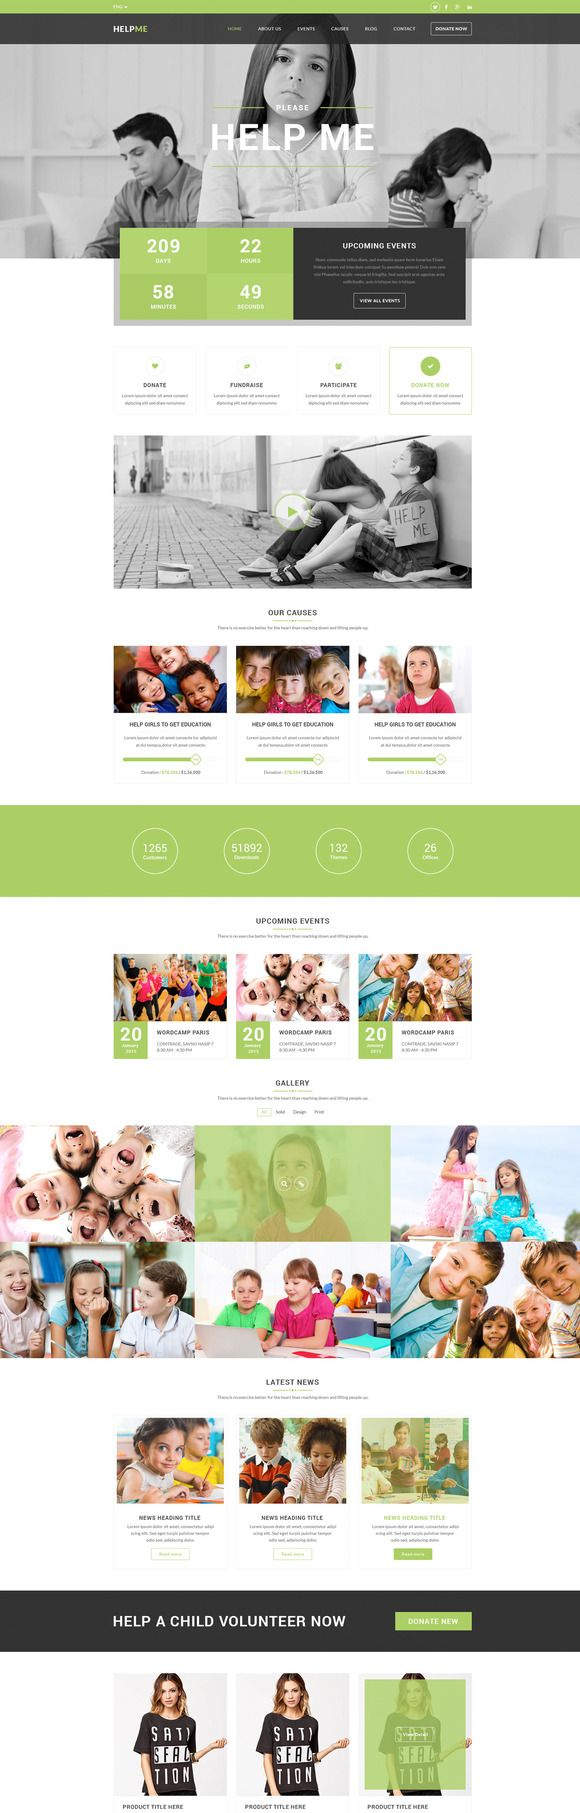 Helpme - Non-profit Charity Template by designs.villa on @creativemarket